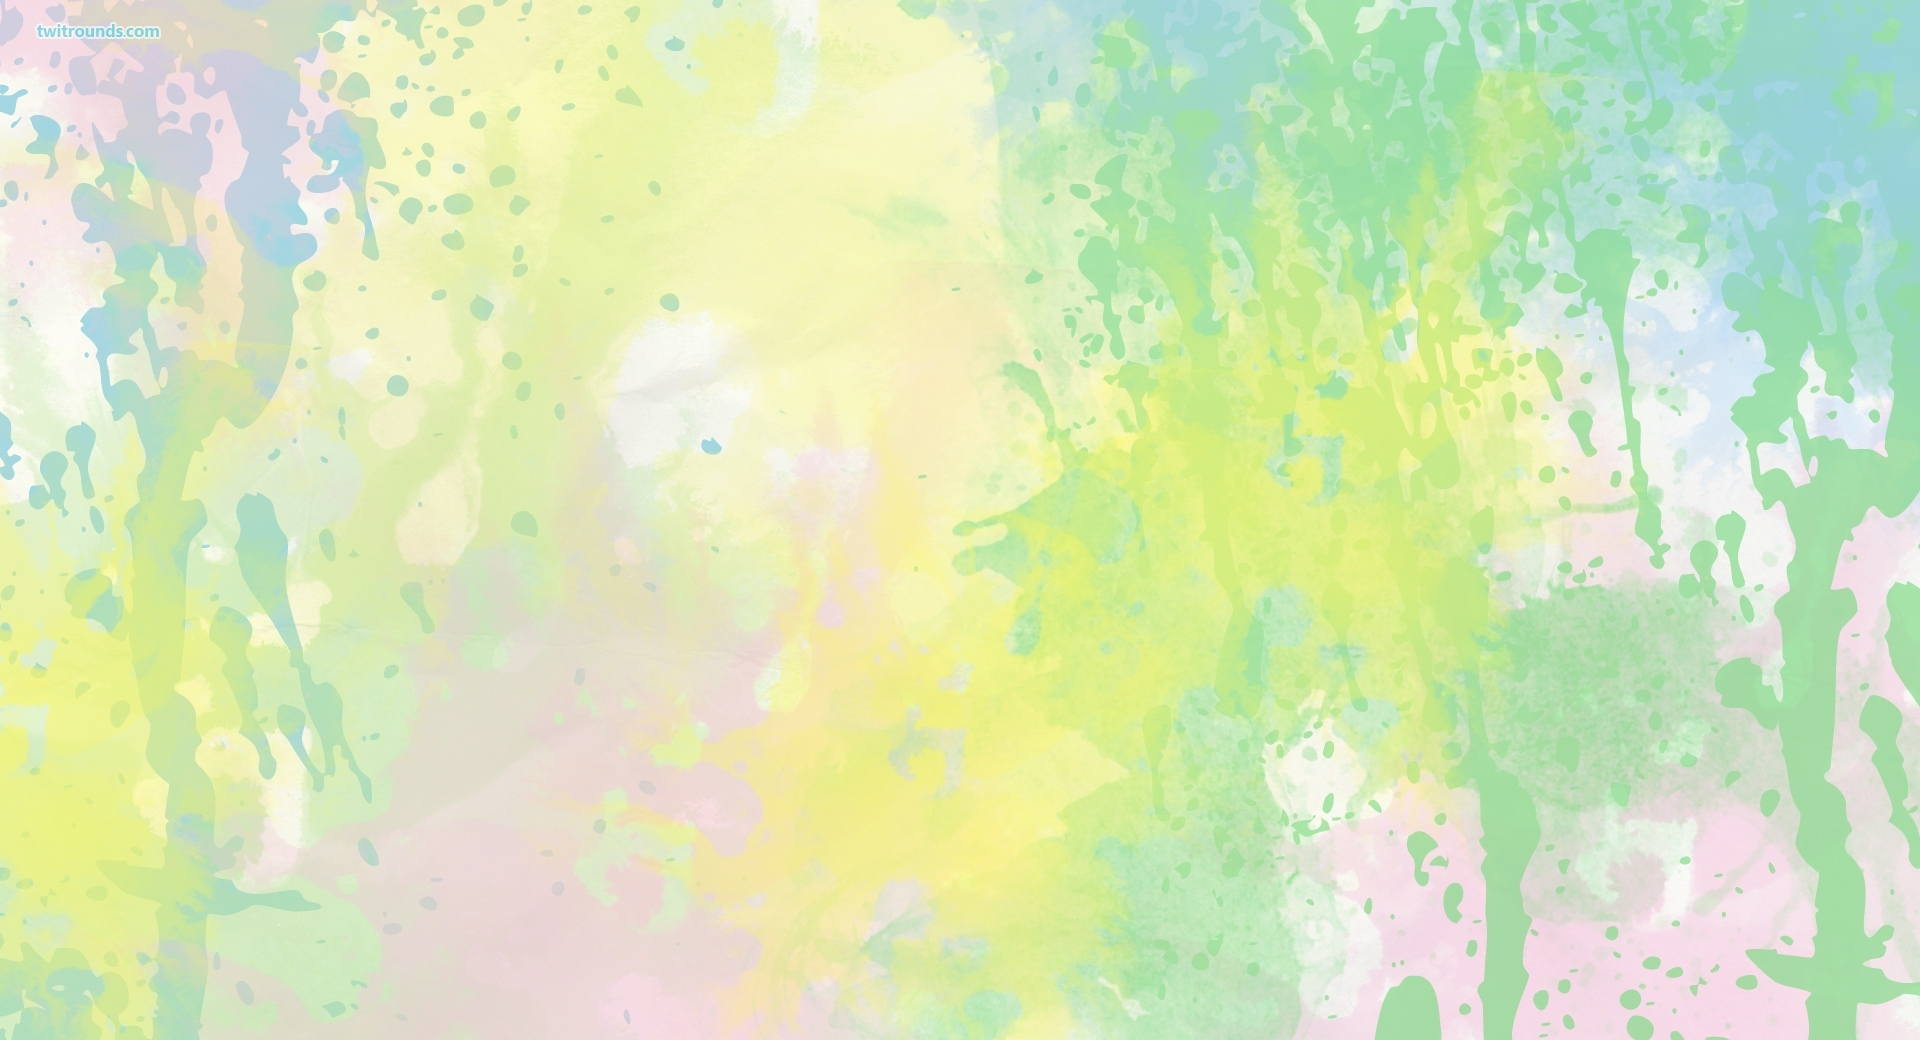 desktop wallpaper abstract watercolor free #3367 wallpaper | wolimej